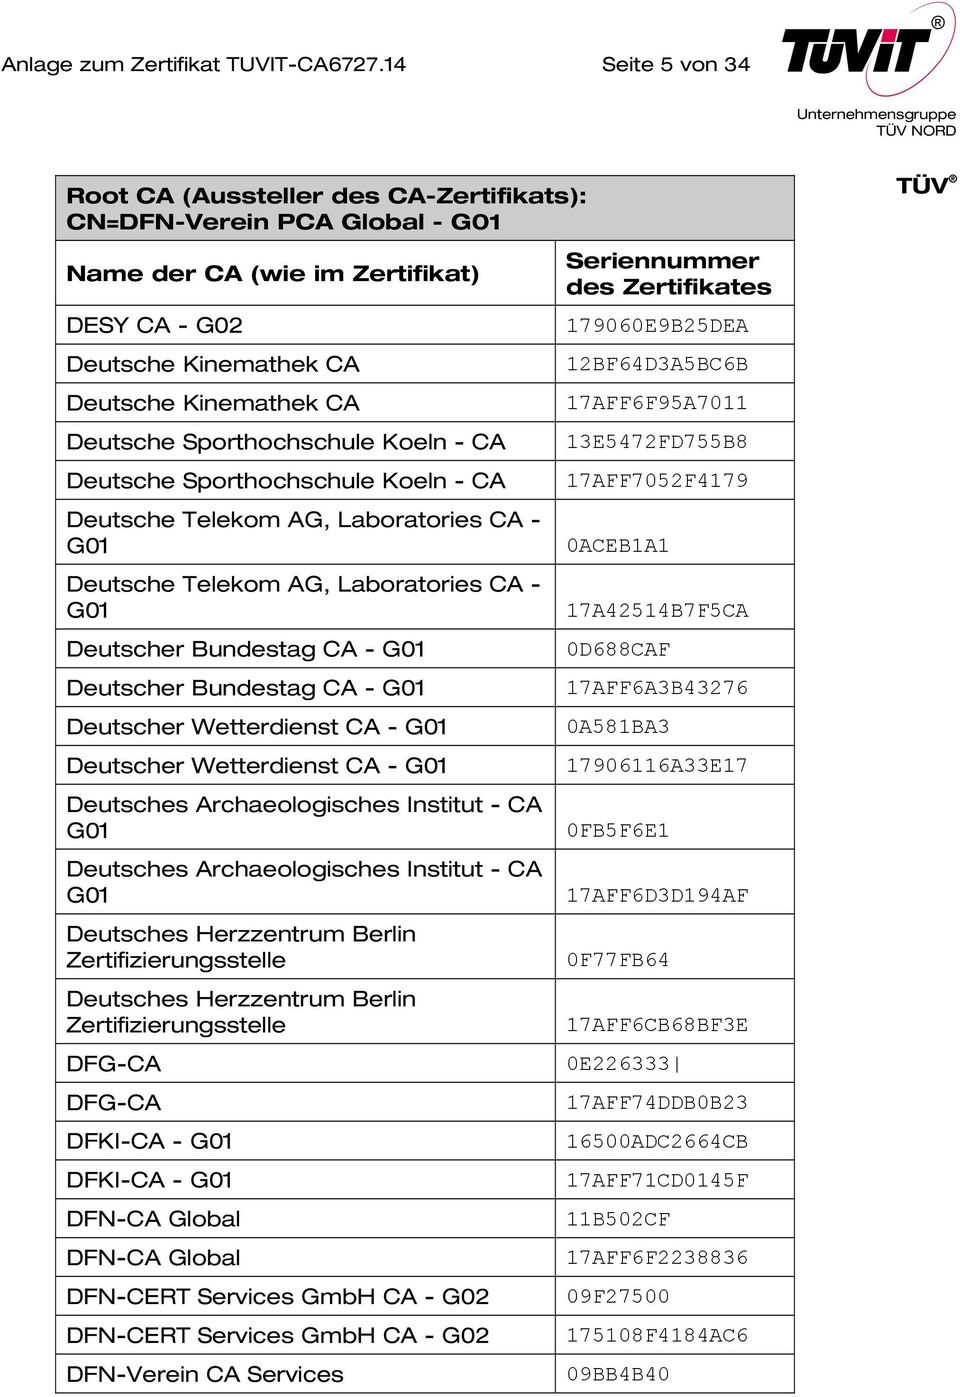 Deutsche Telekom AG, Laboratories CA - G01 Deutscher Bundestag CA - G01 Deutscher Bundestag CA - G01 Deutscher Wetterdienst CA - G01 Deutscher Wetterdienst CA - G01 Deutsches Archaeologisches